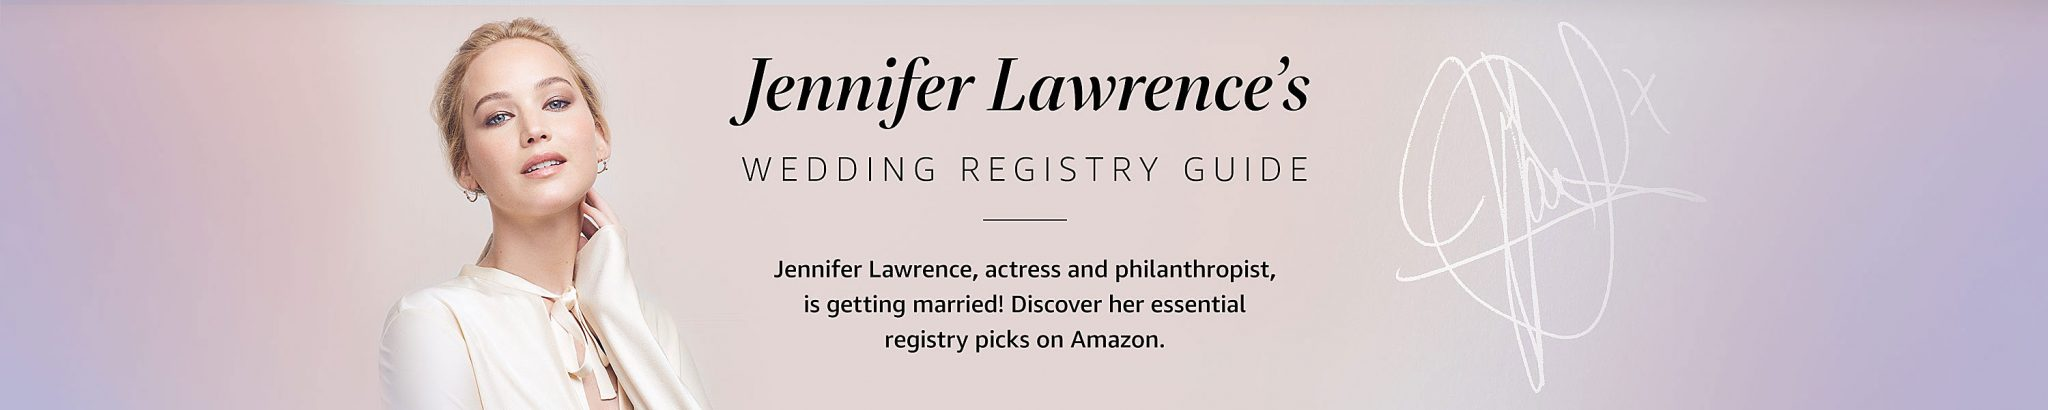 jennifer lawrence wedding registry ideas